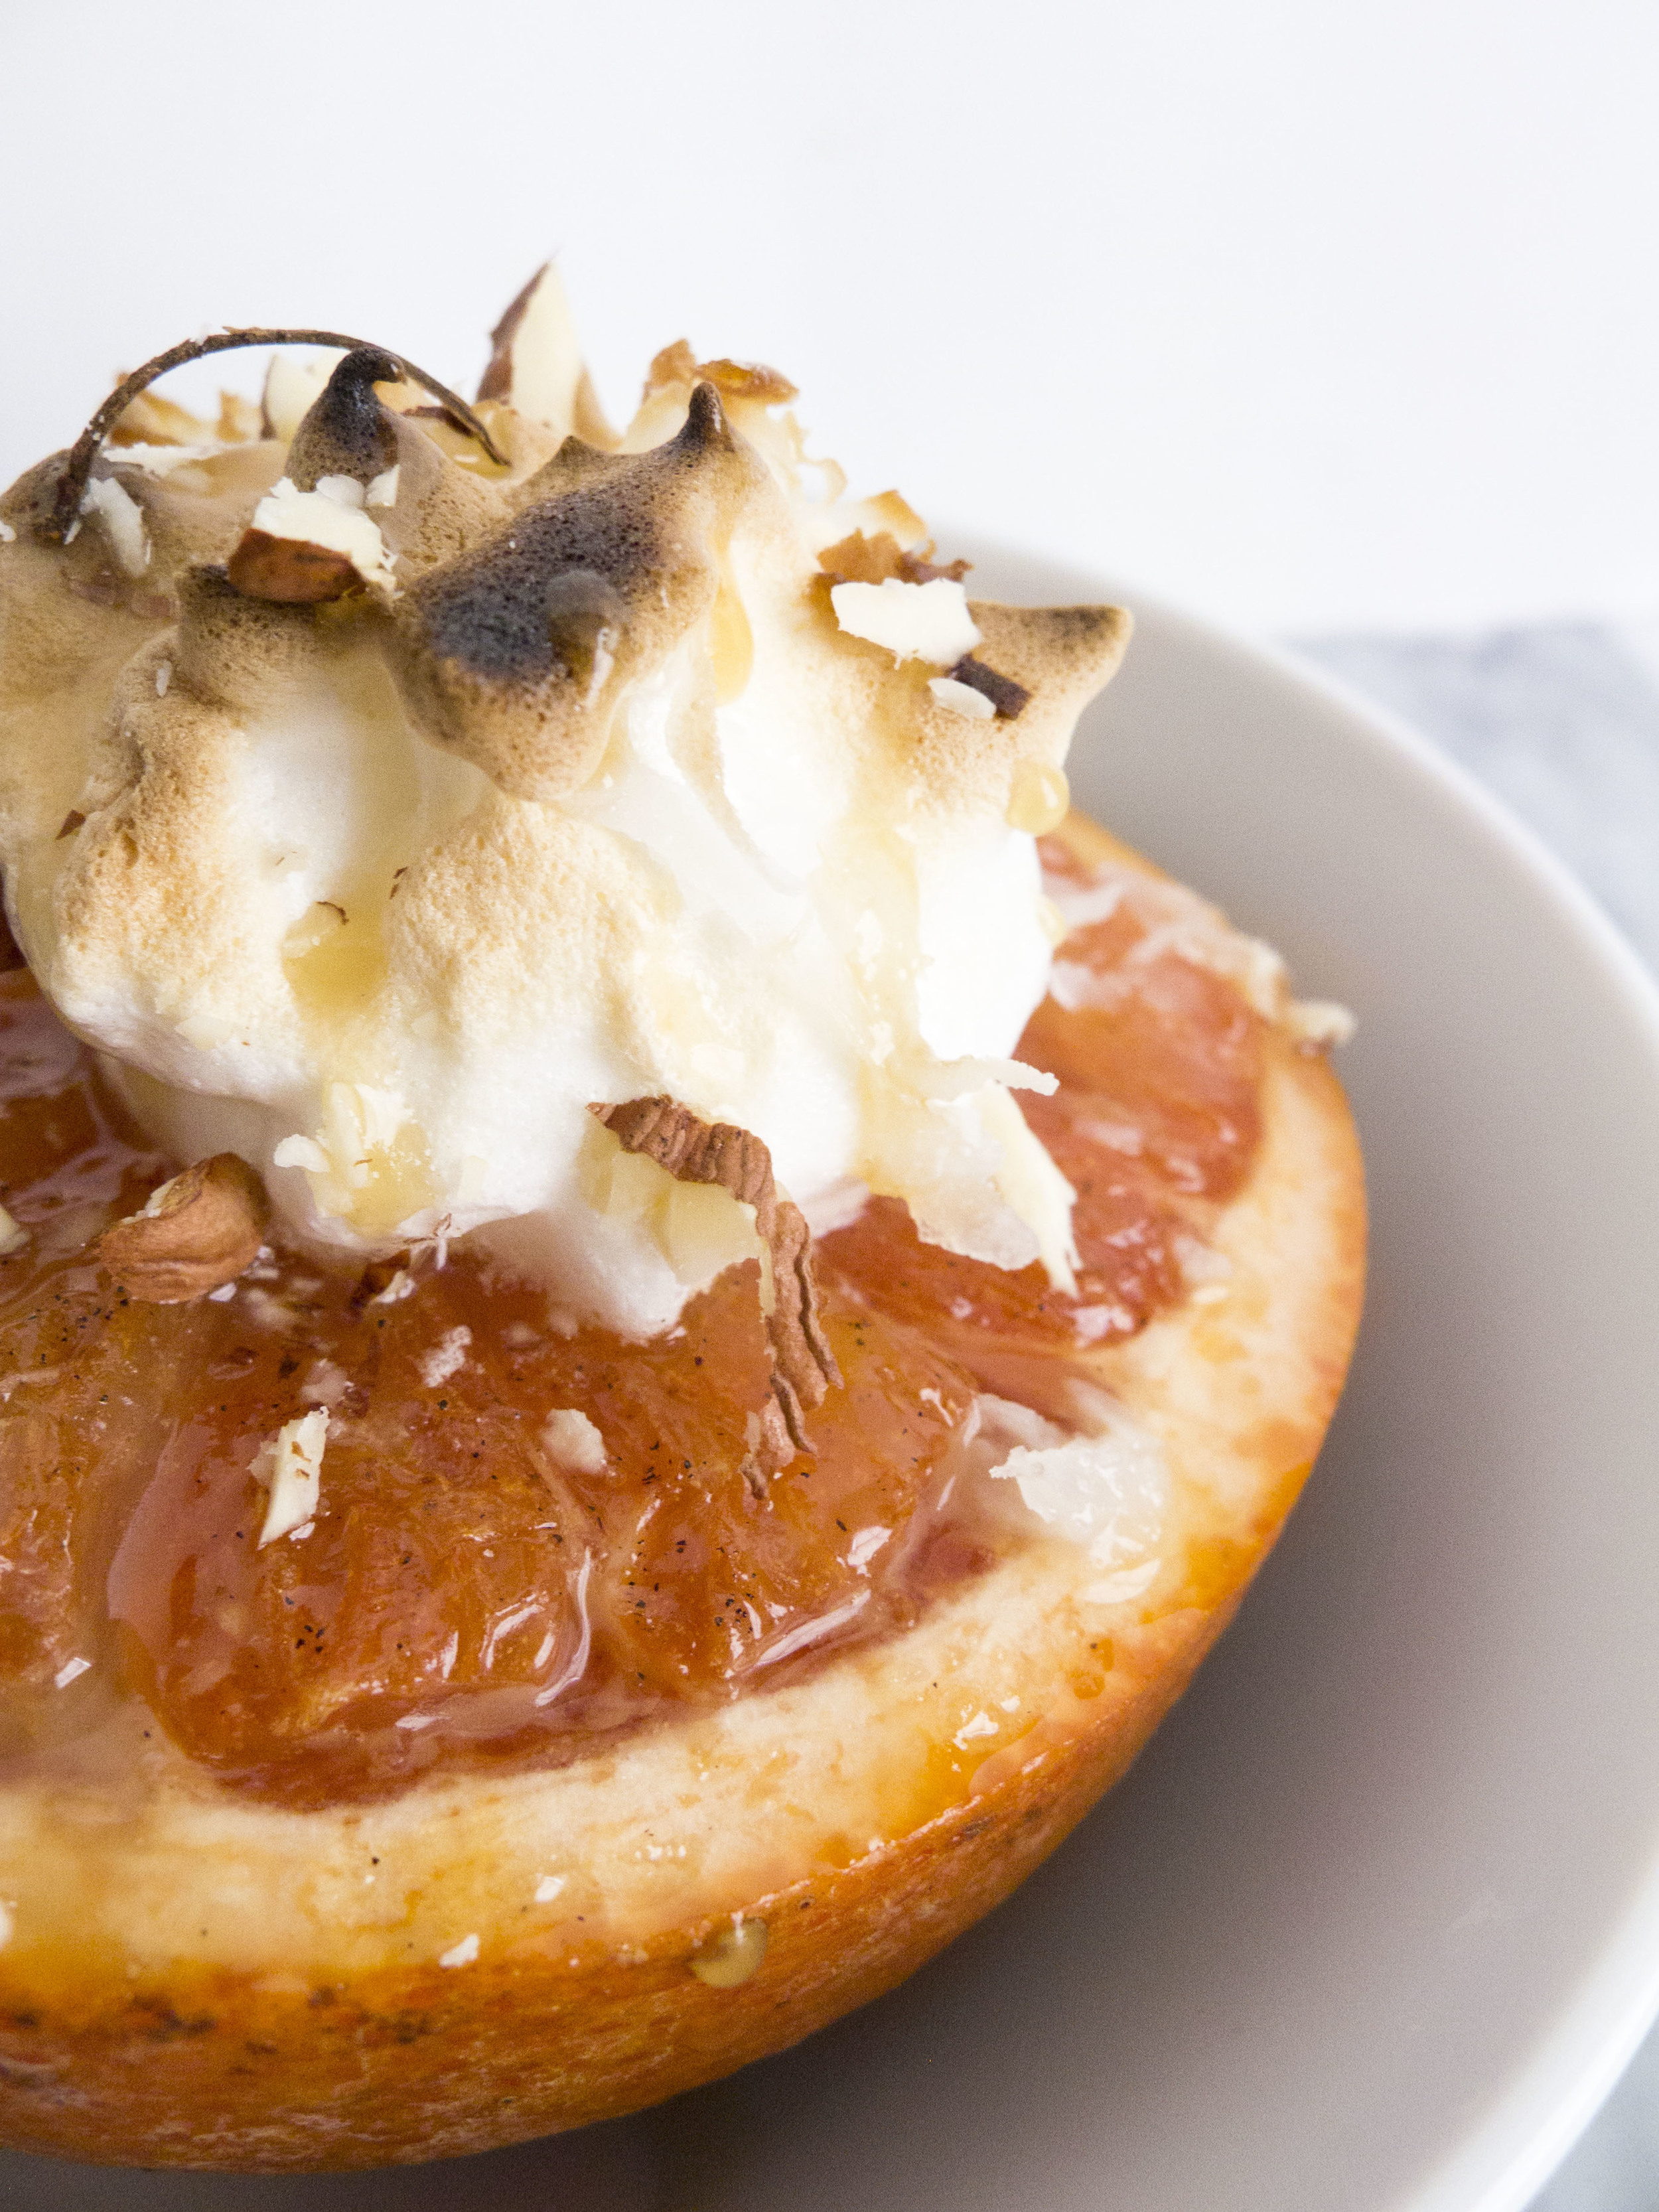 broiled grapefruit meringue with caramel and hazelnuts